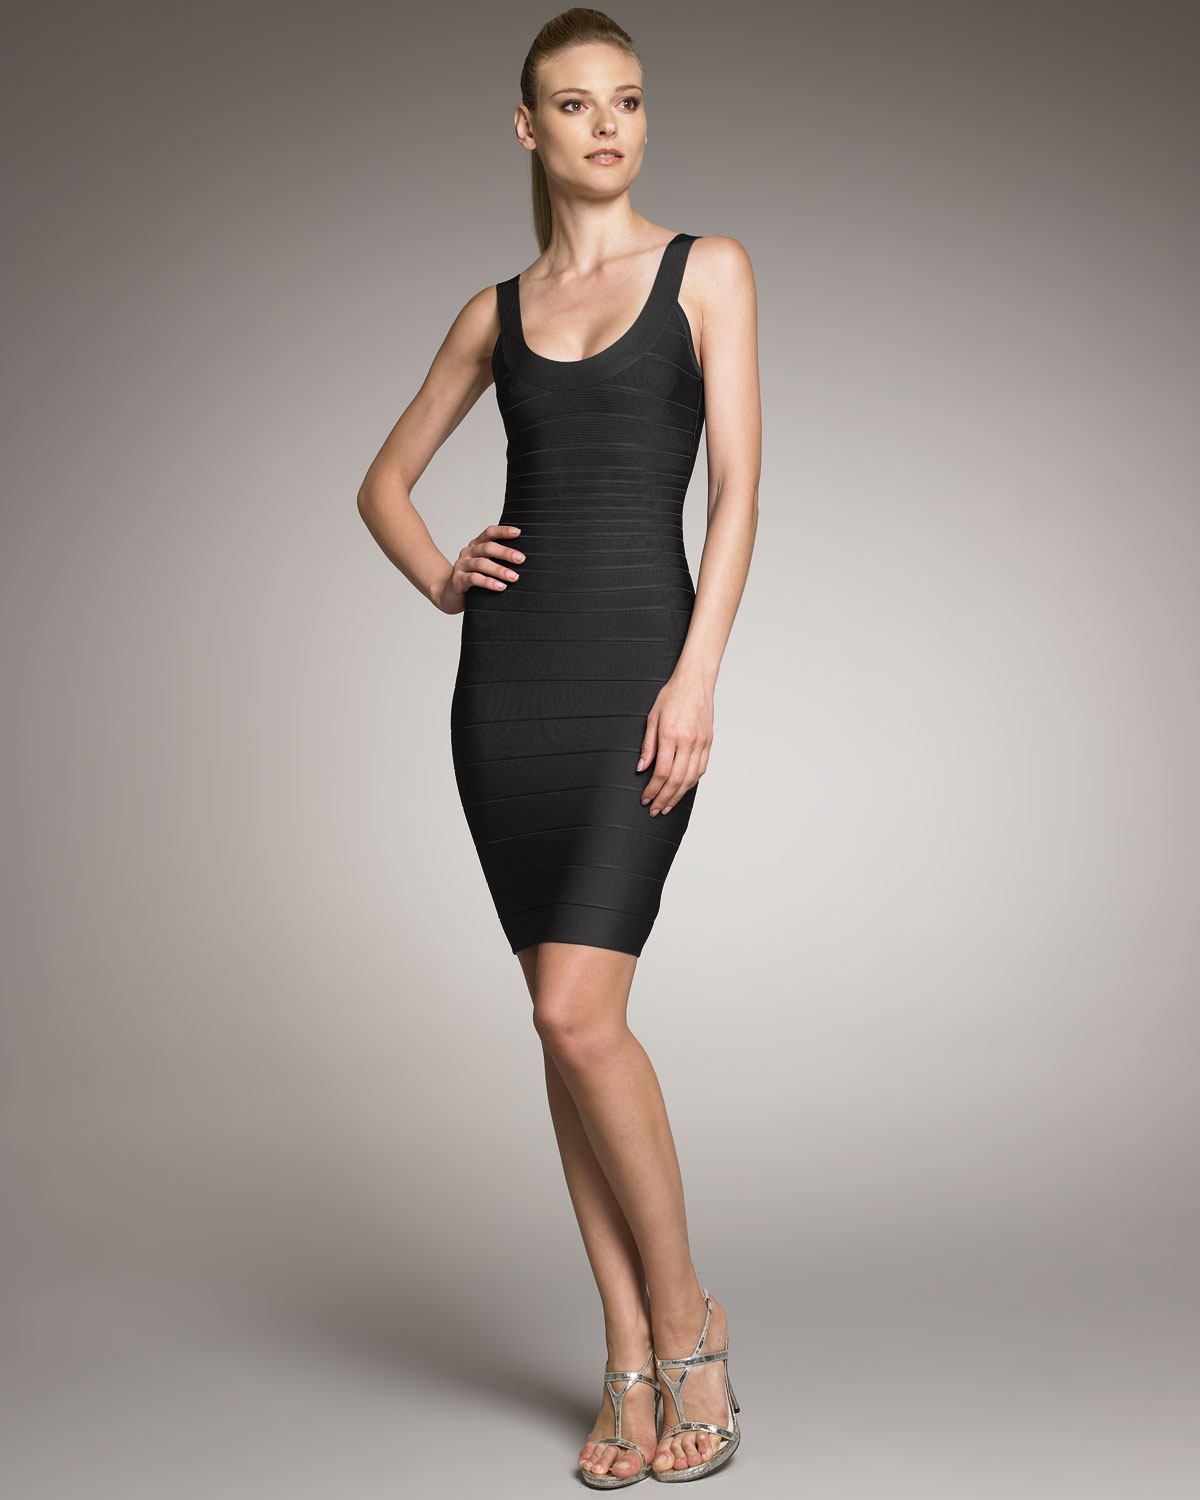 Black Herve Leger Strapless Bandage Dress